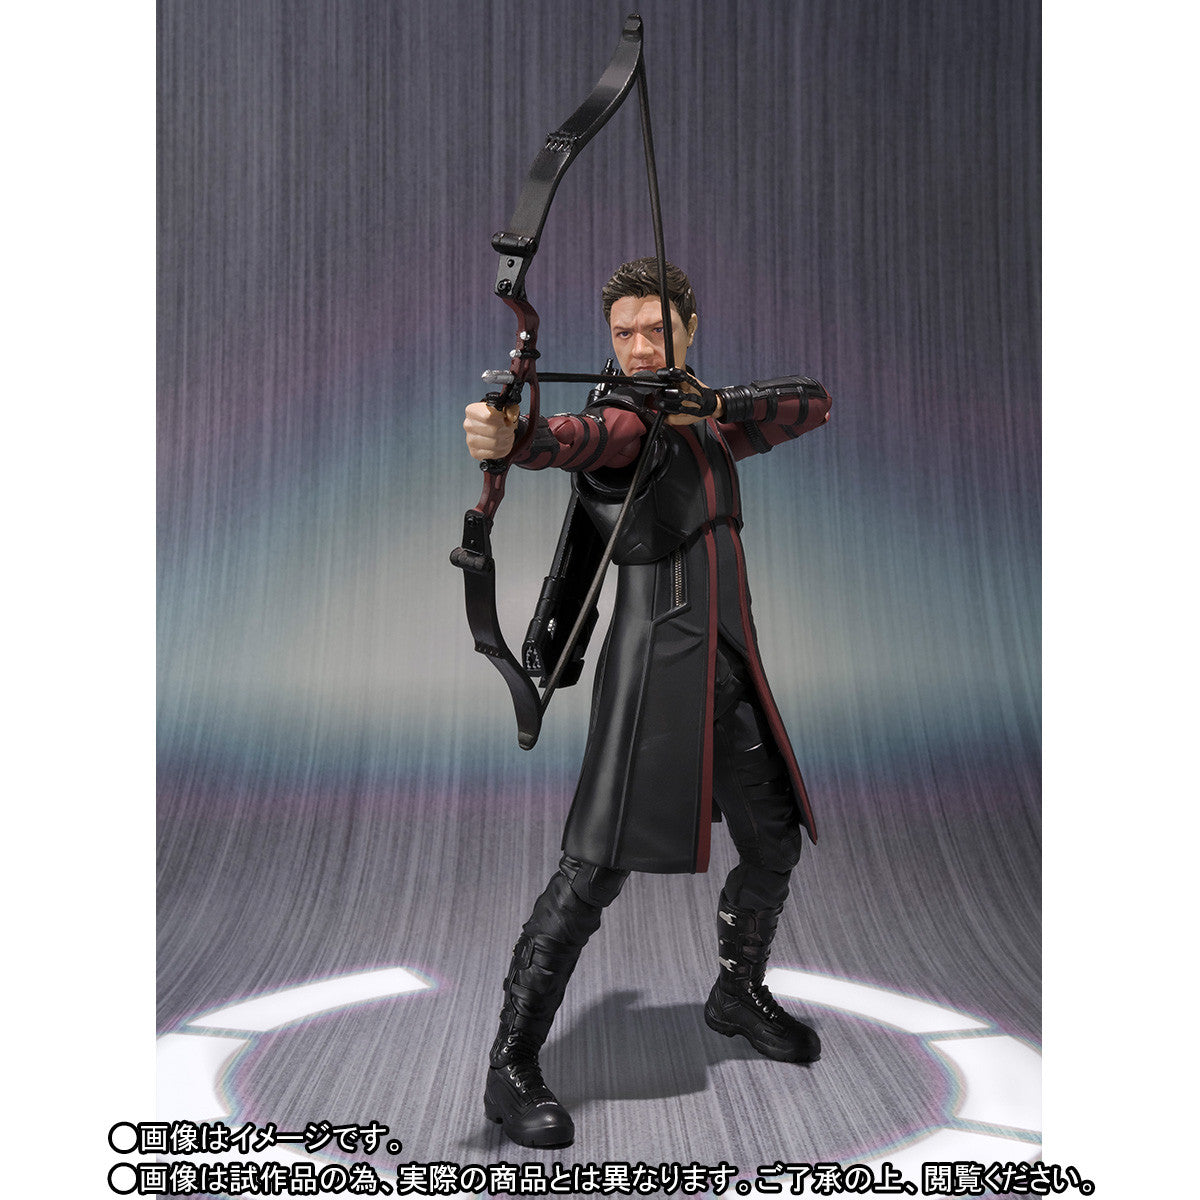 S.H.Figuarts - Avengers: Age of Ultron - Hawkeye (TamashiiWeb Exclusive) - Marvelous Toys - 5